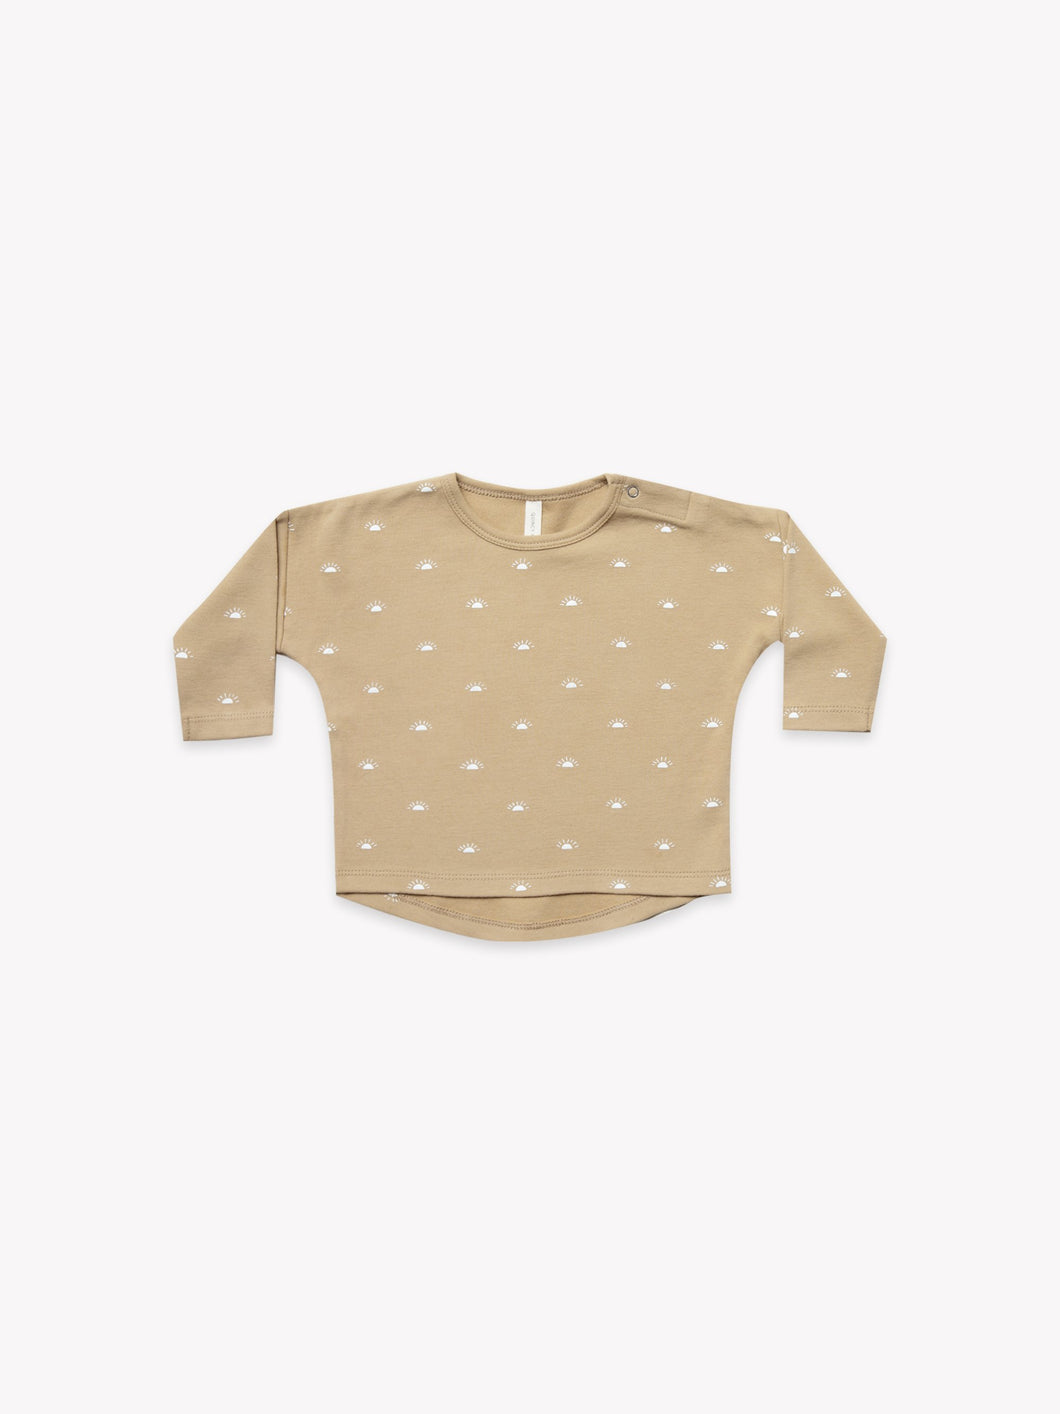 Quincy Mae - LS Baby Tee - Honey